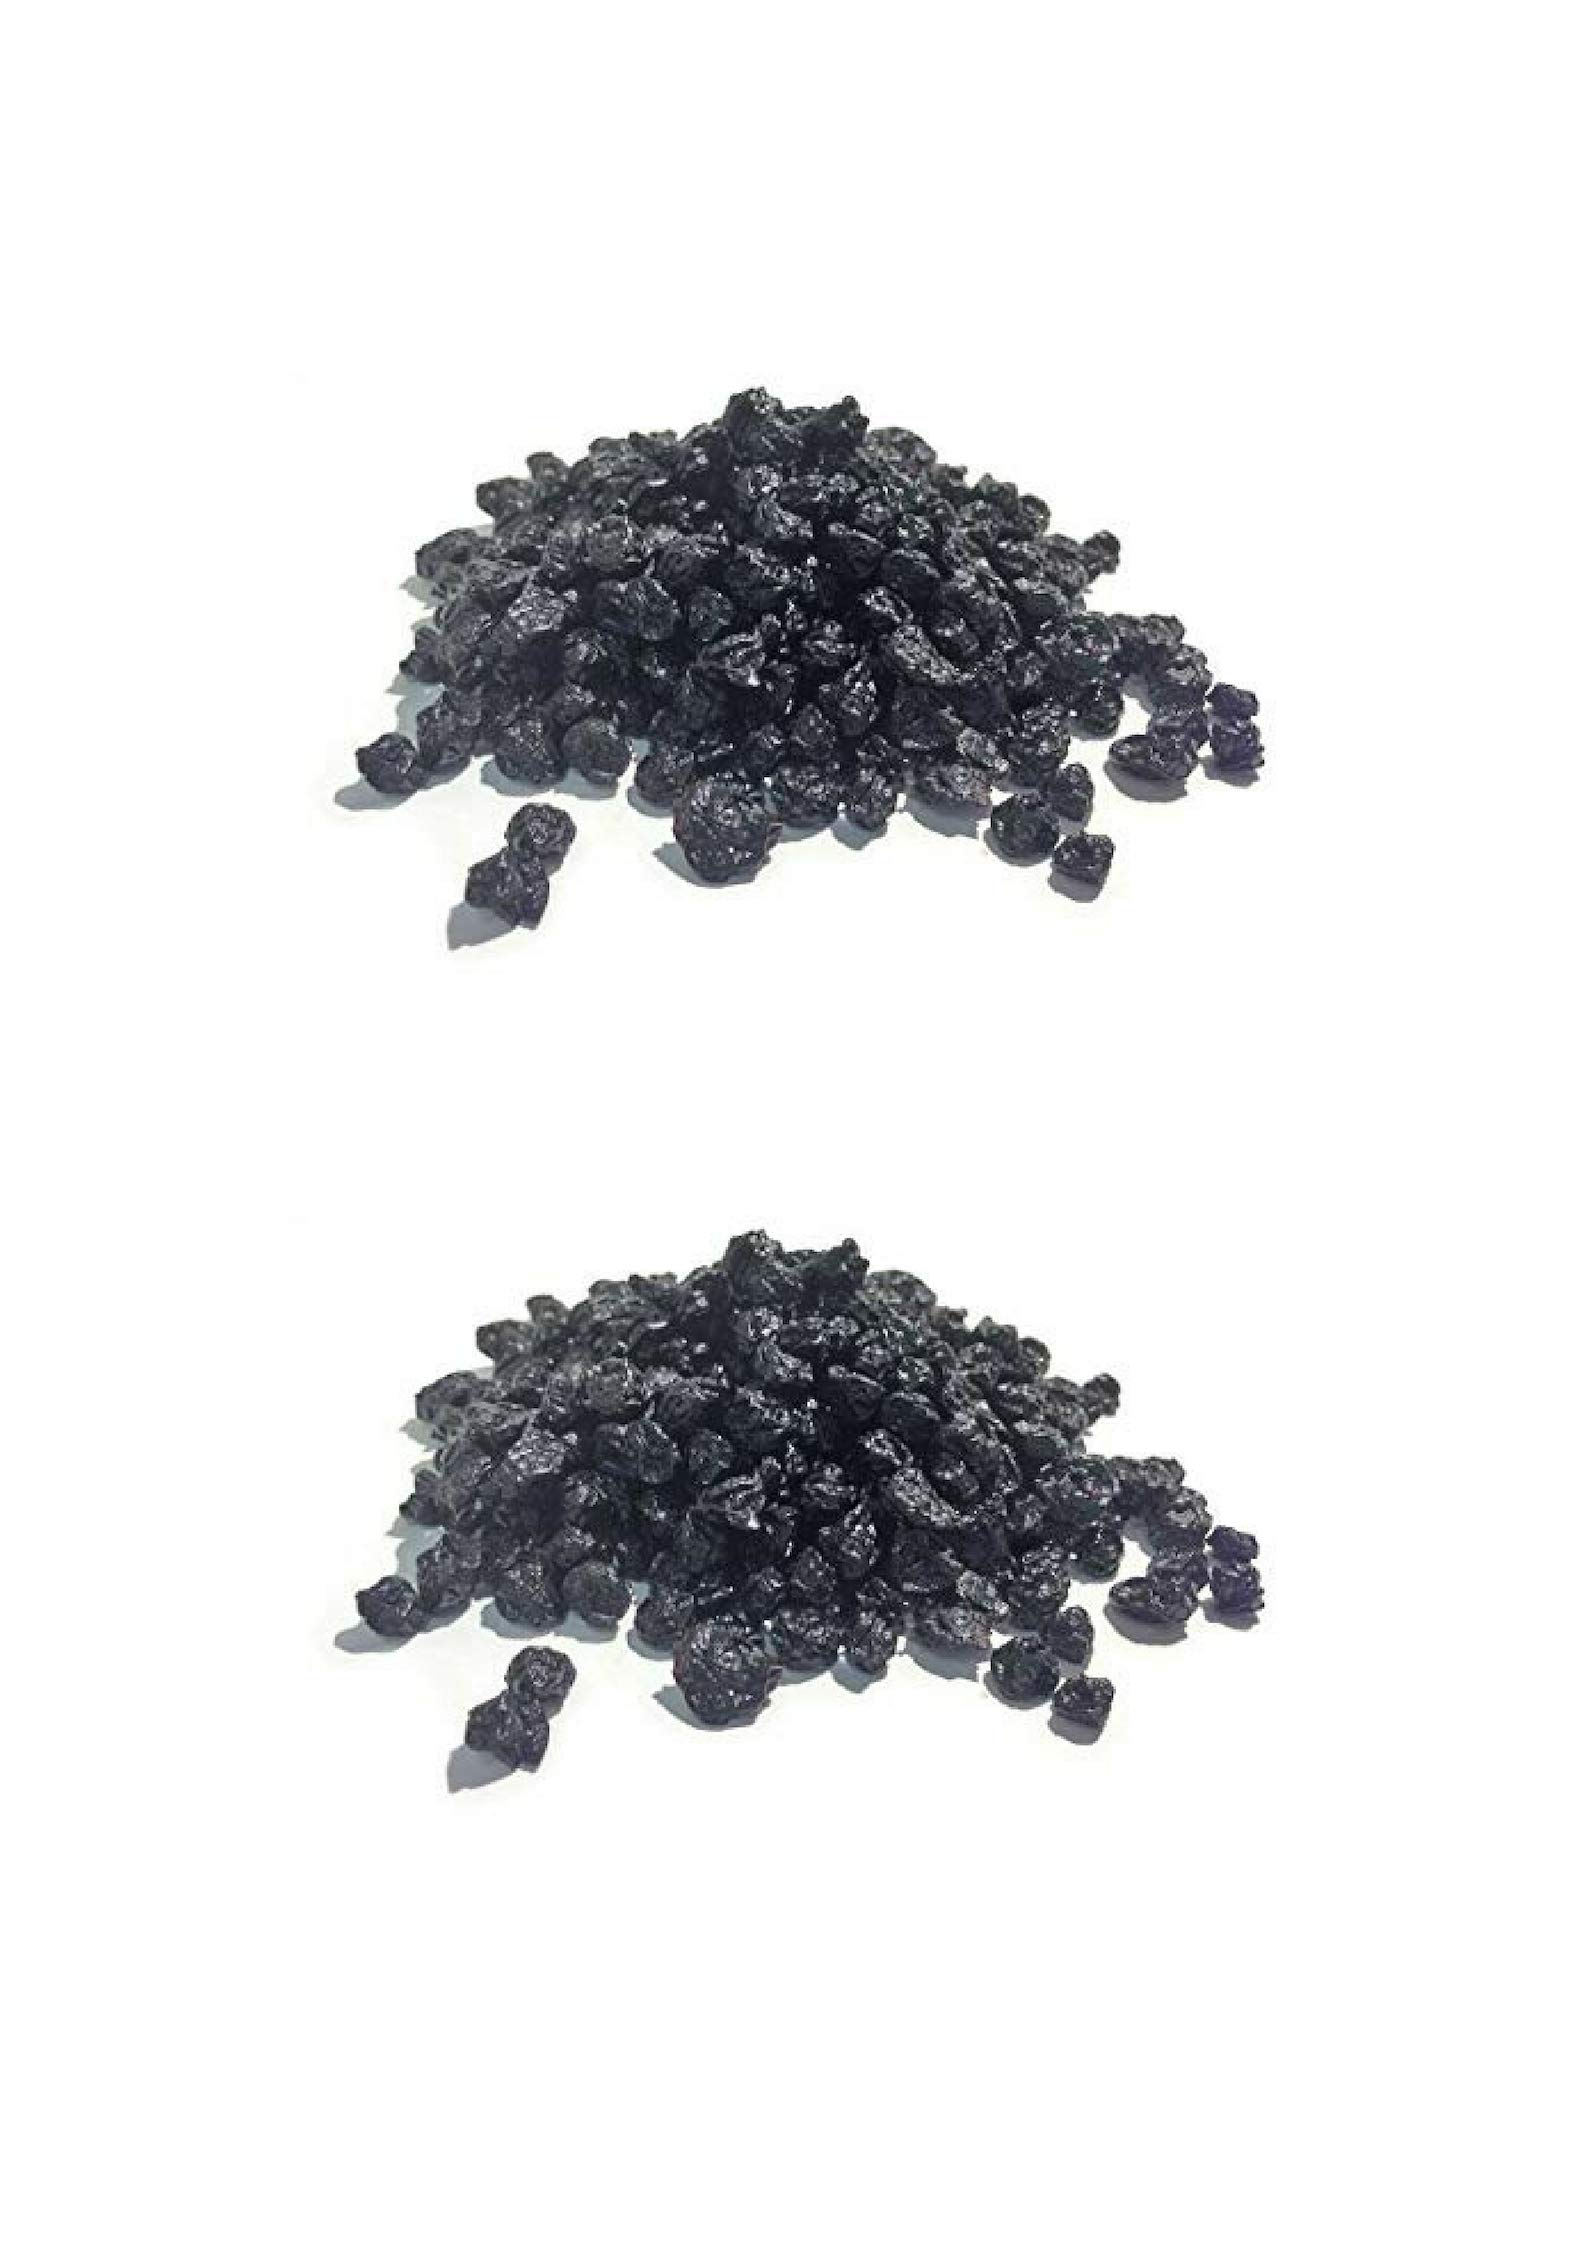 Dried Blueberries 2 lbs,Whole,Cultivated, Resealable Bag, Great for Salads, Mixes, Cooking and Baking. (2 pack)